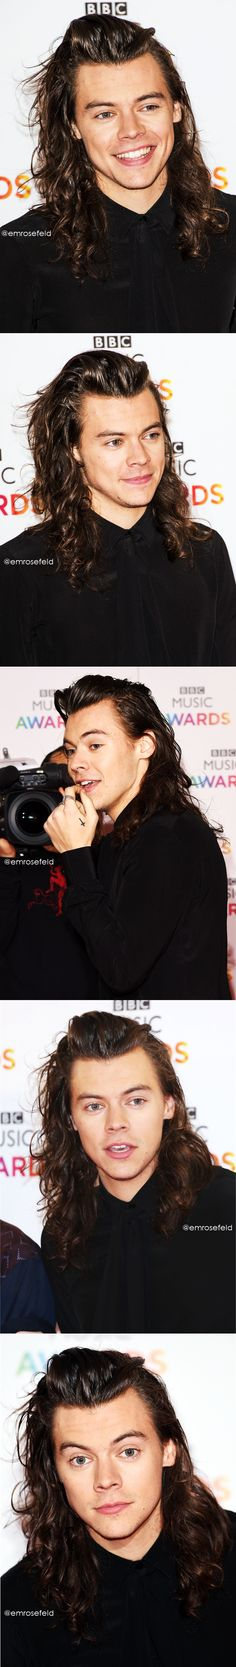 Harry Styles | BBC Music Awards 12.10.15 | @emrosefeld |